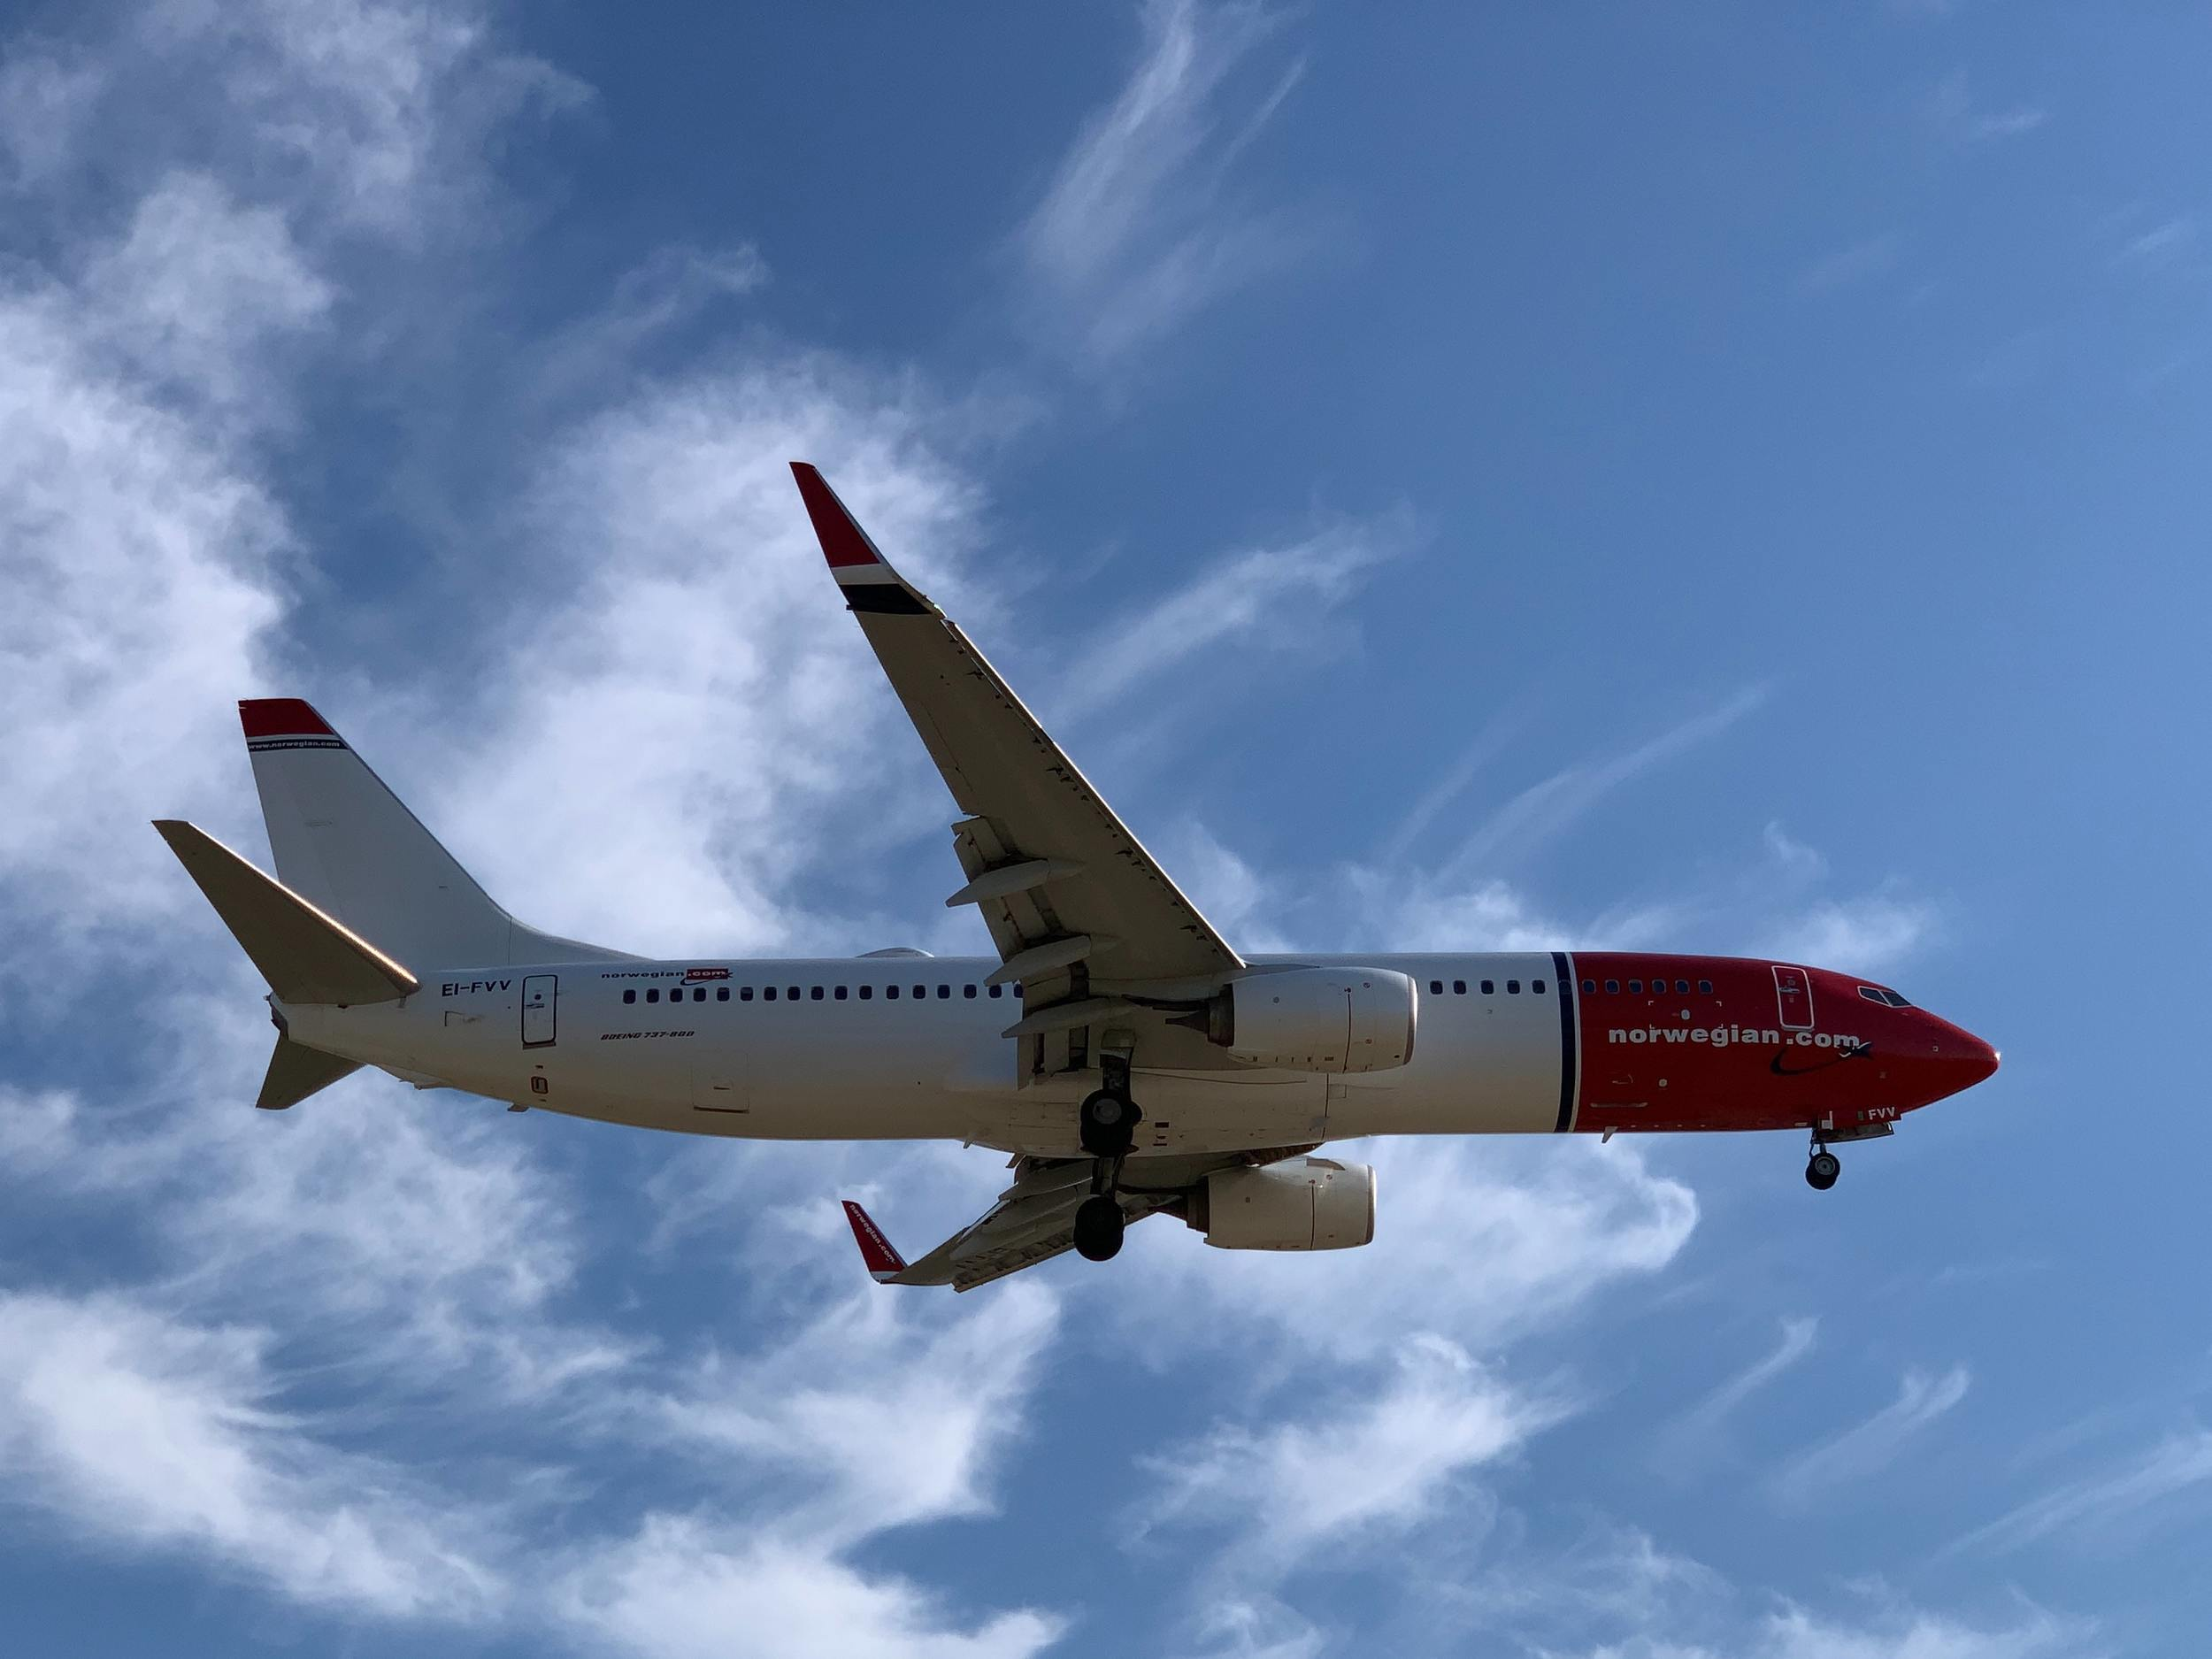 Step by Step Guide on How to Change Flights or Get Refunds on Norwegian Air Shuttle